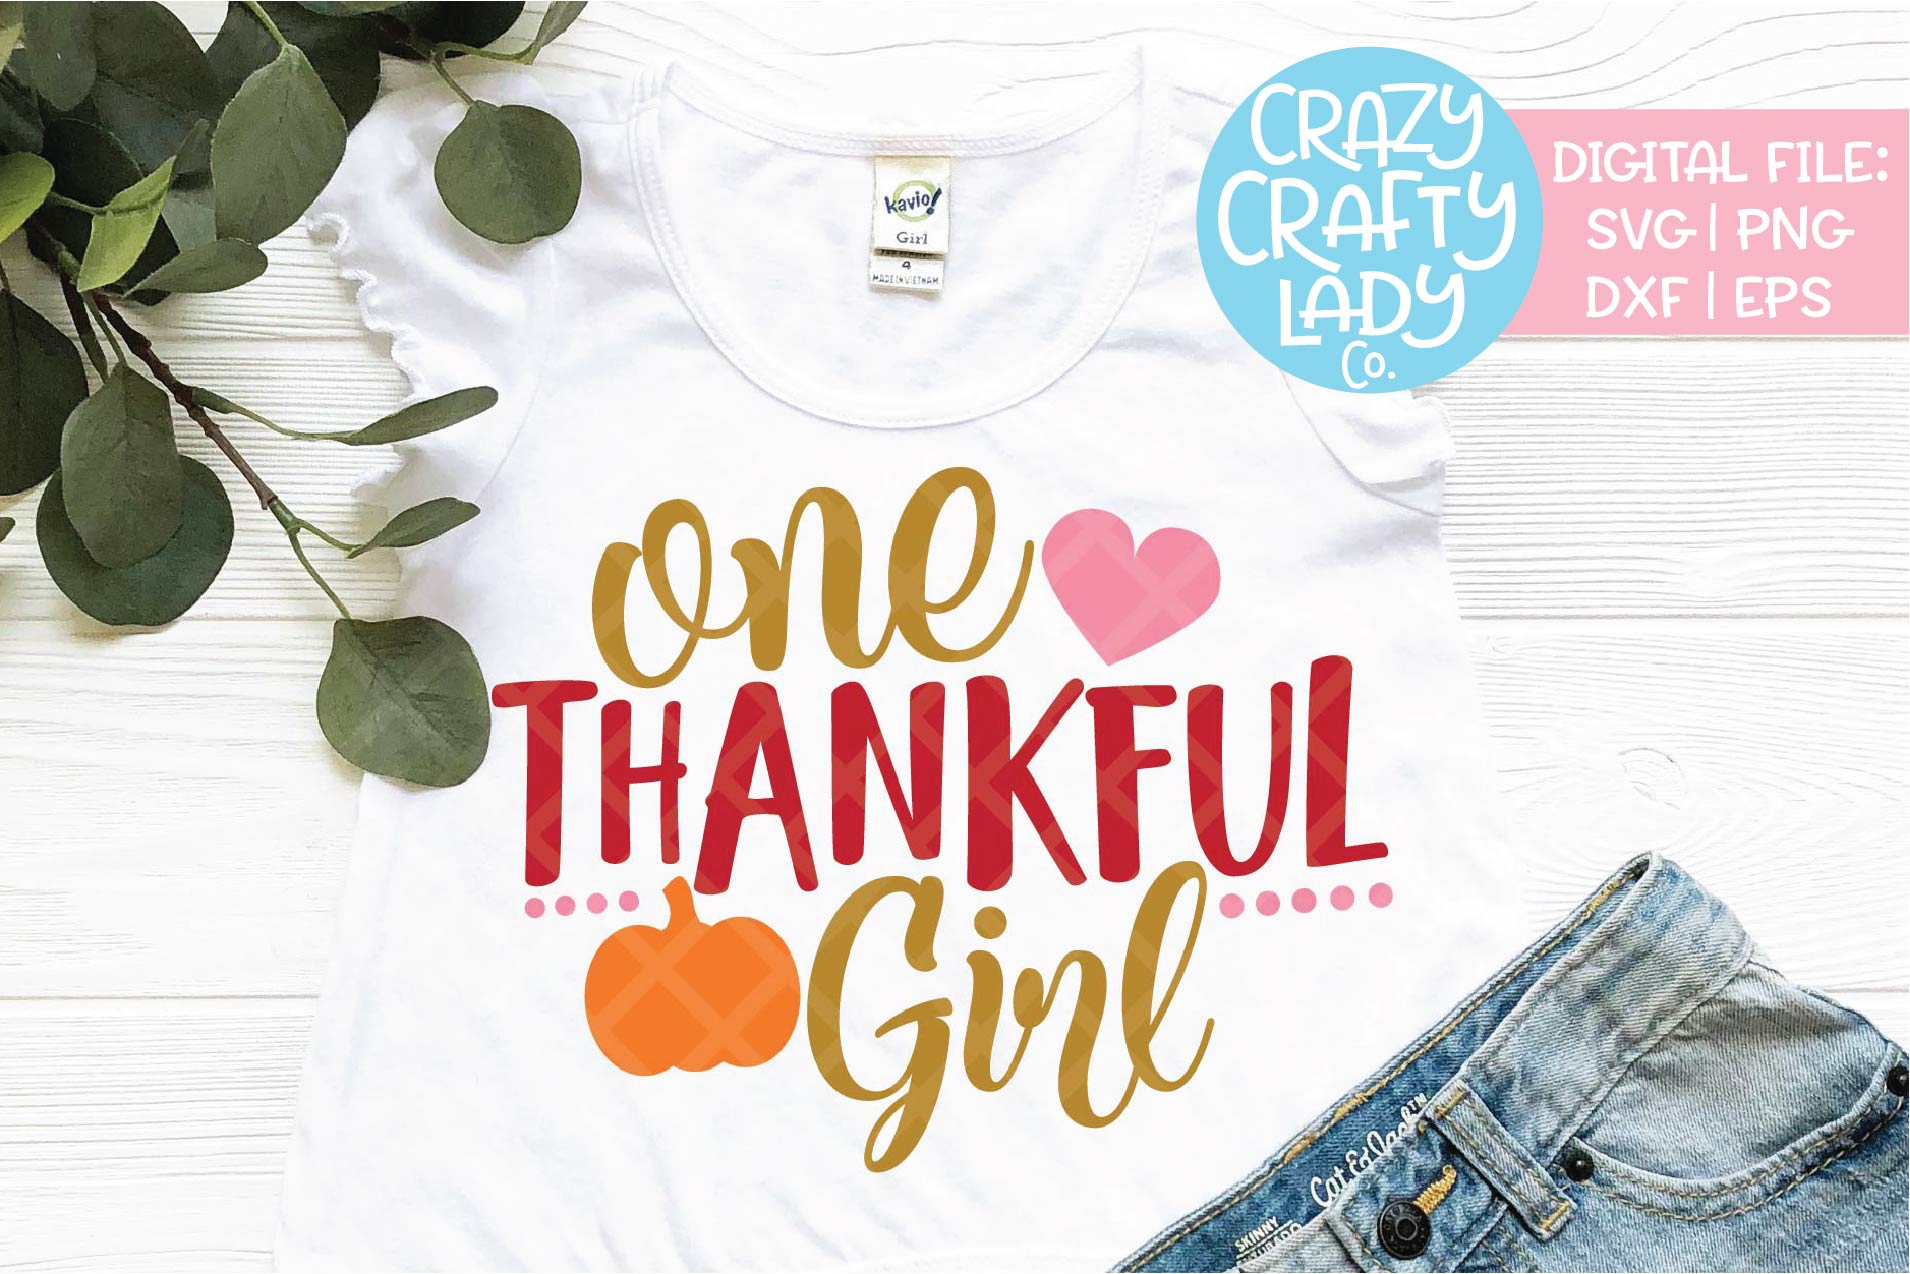 One Thankful Girl SVG DXF EPS PNG Cut File example image 1